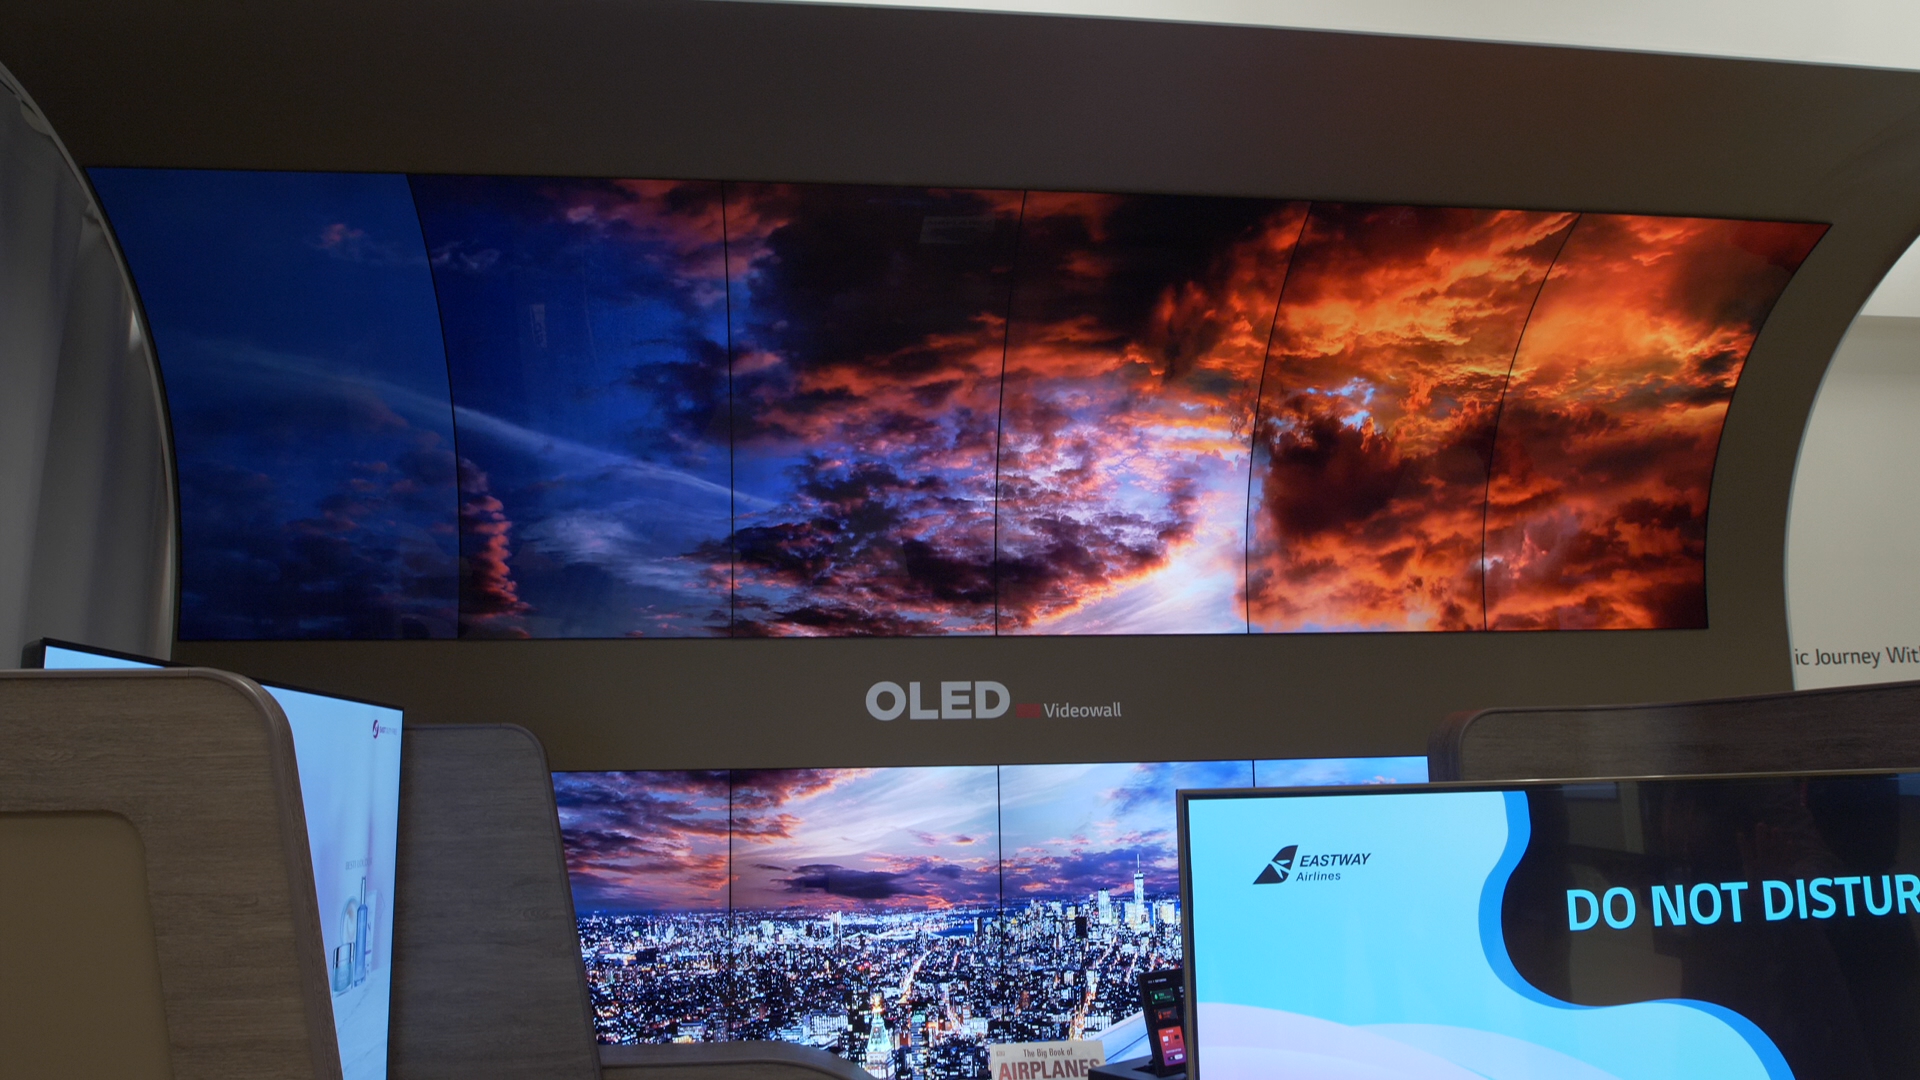 Video: LG Display's first-class airline displays are bonkers